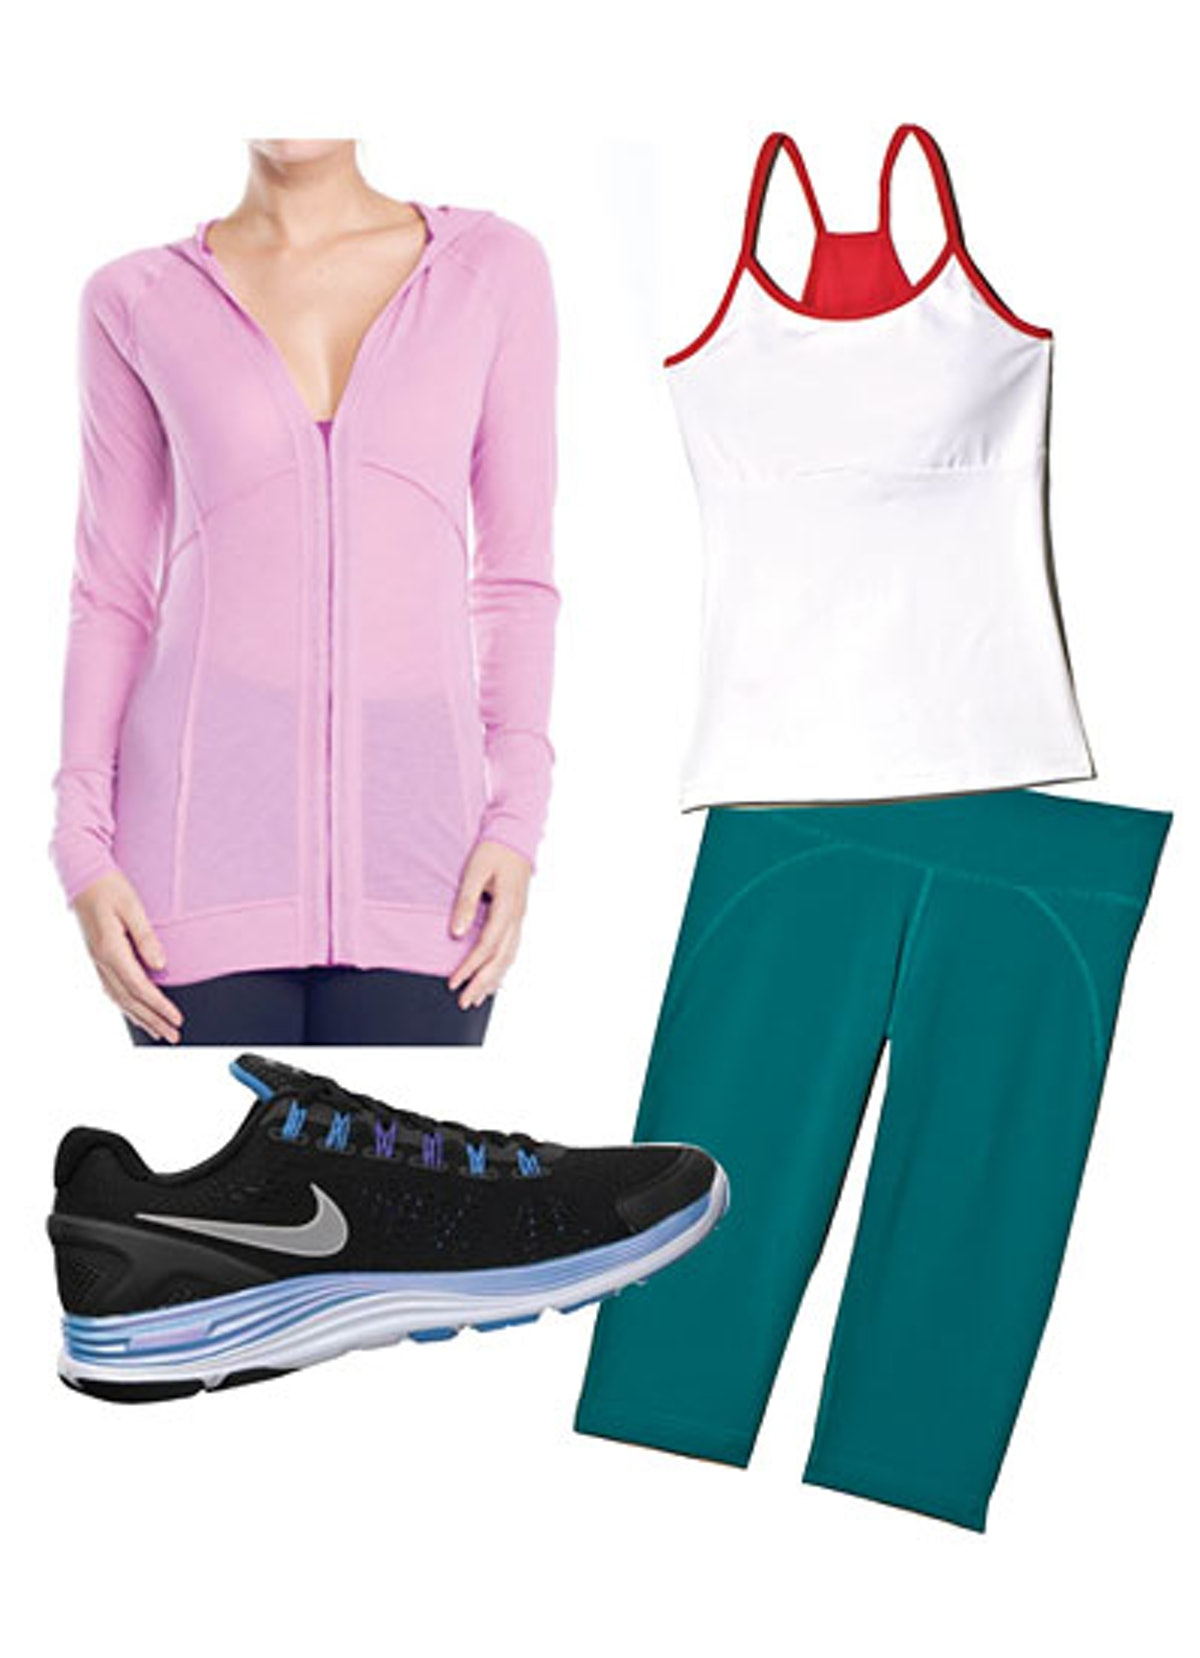 bess-workout-recommendations-02-v.jpg